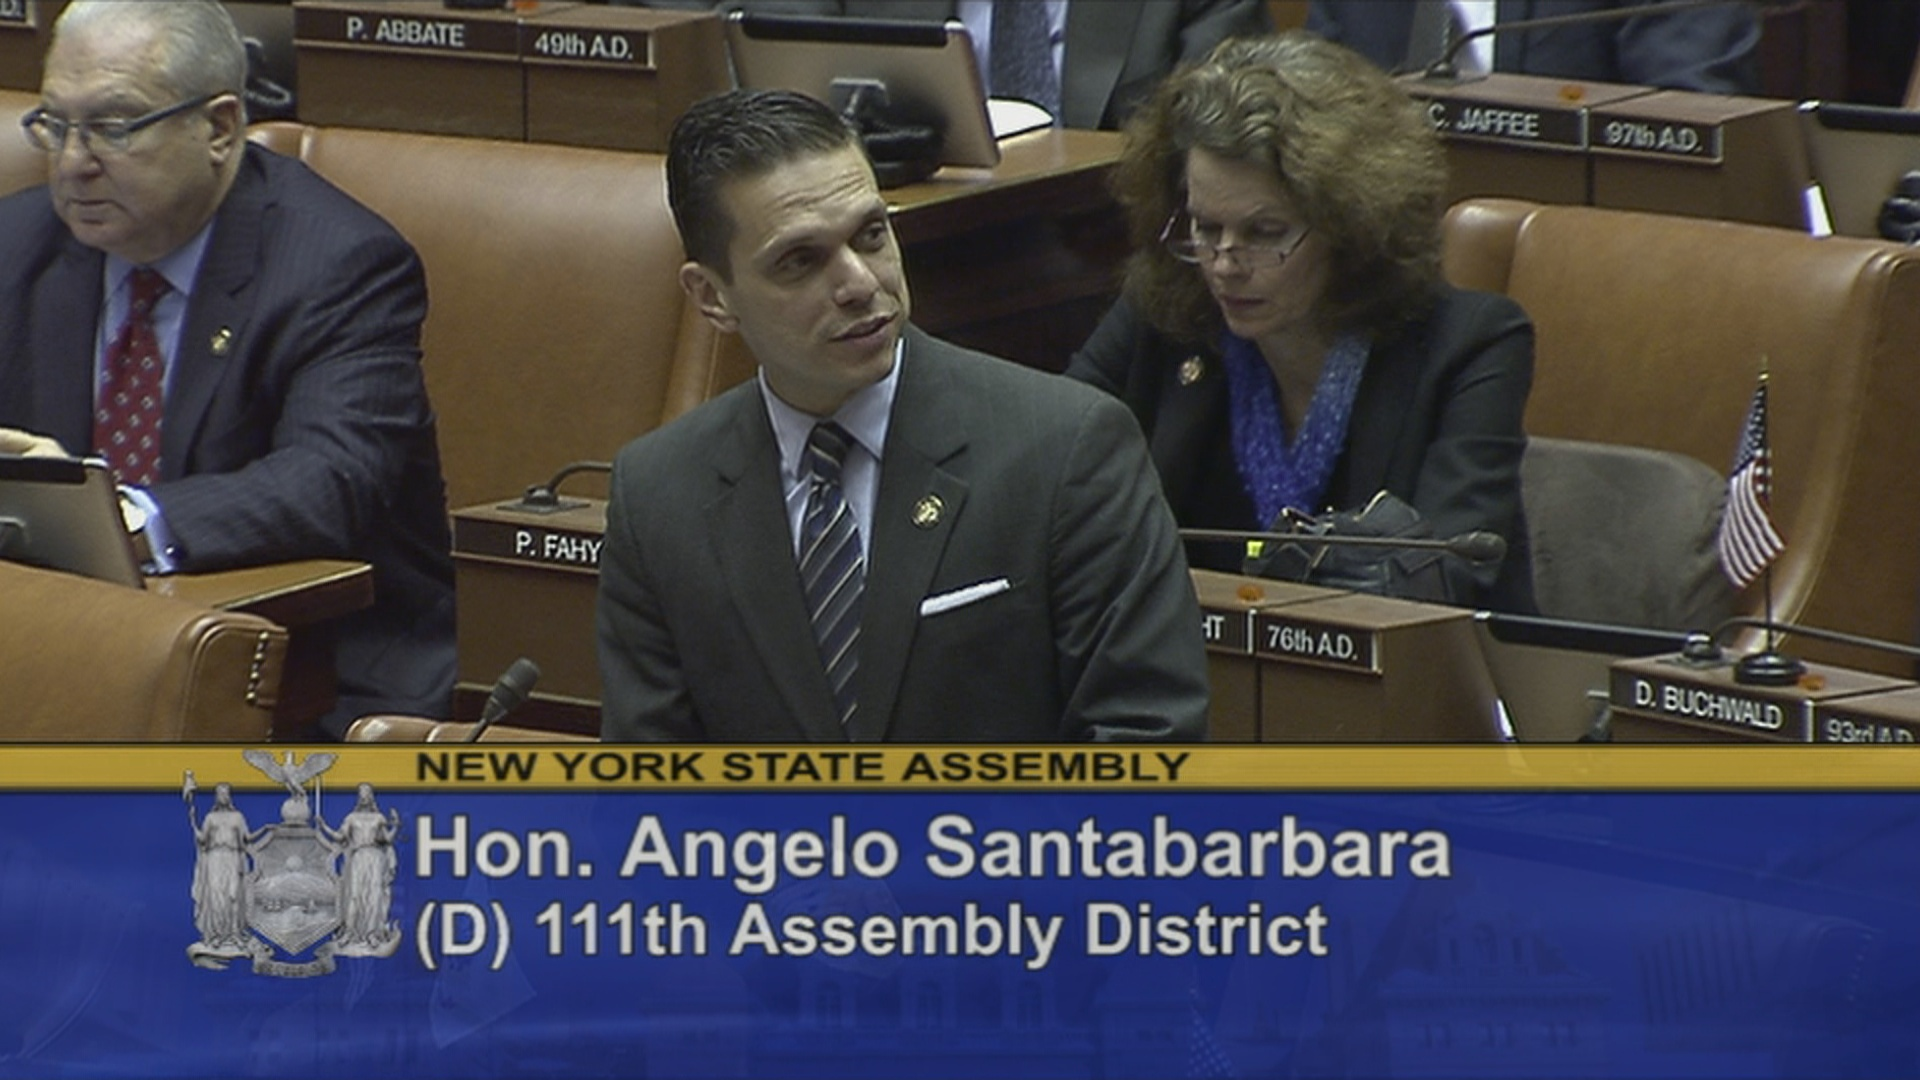 Assemblyman Santabarbara Welcomes Distinguished Guests to the Assembly